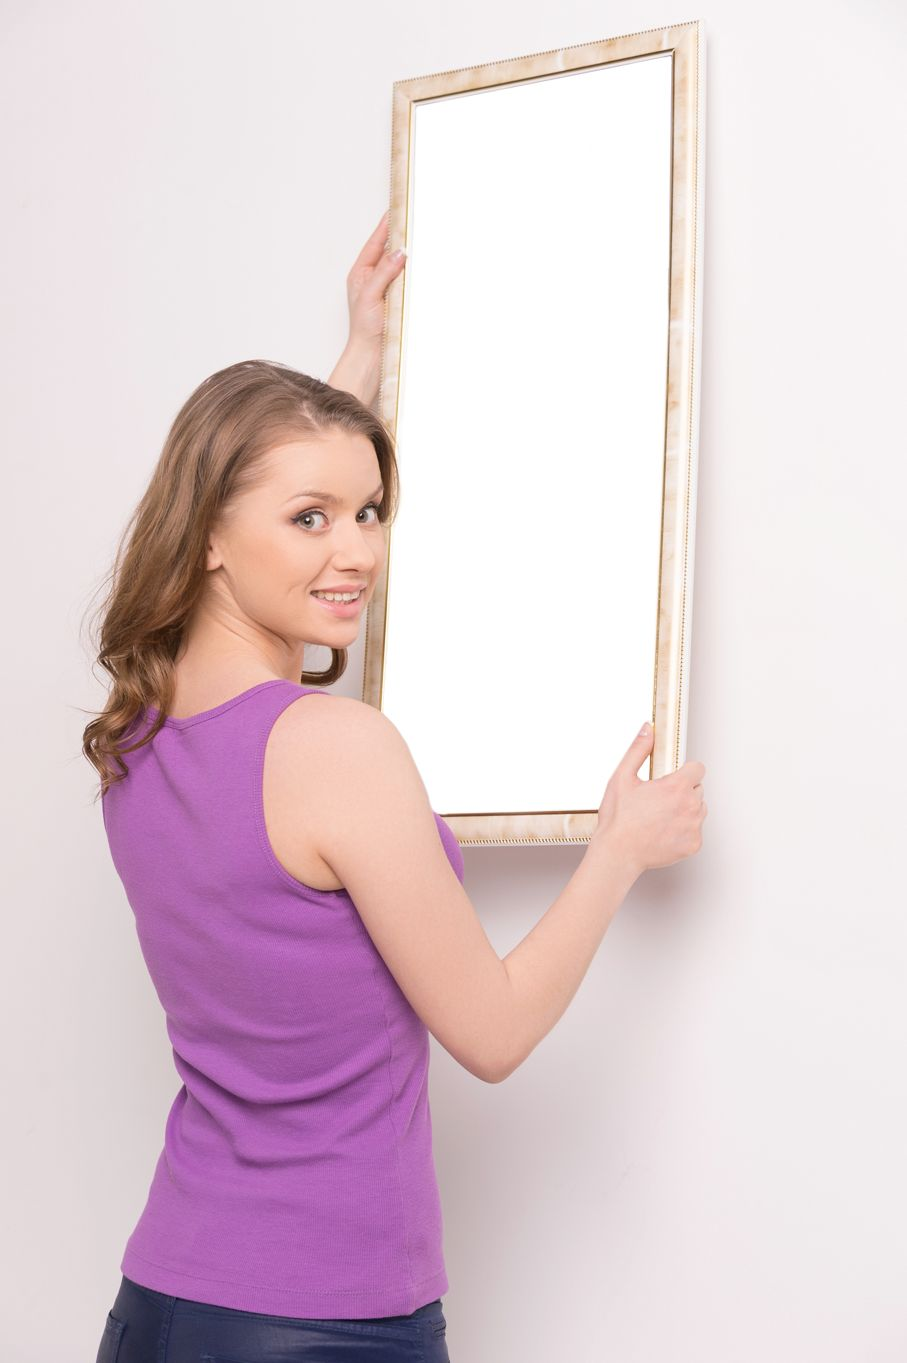 Young woman hanging mirror on wall